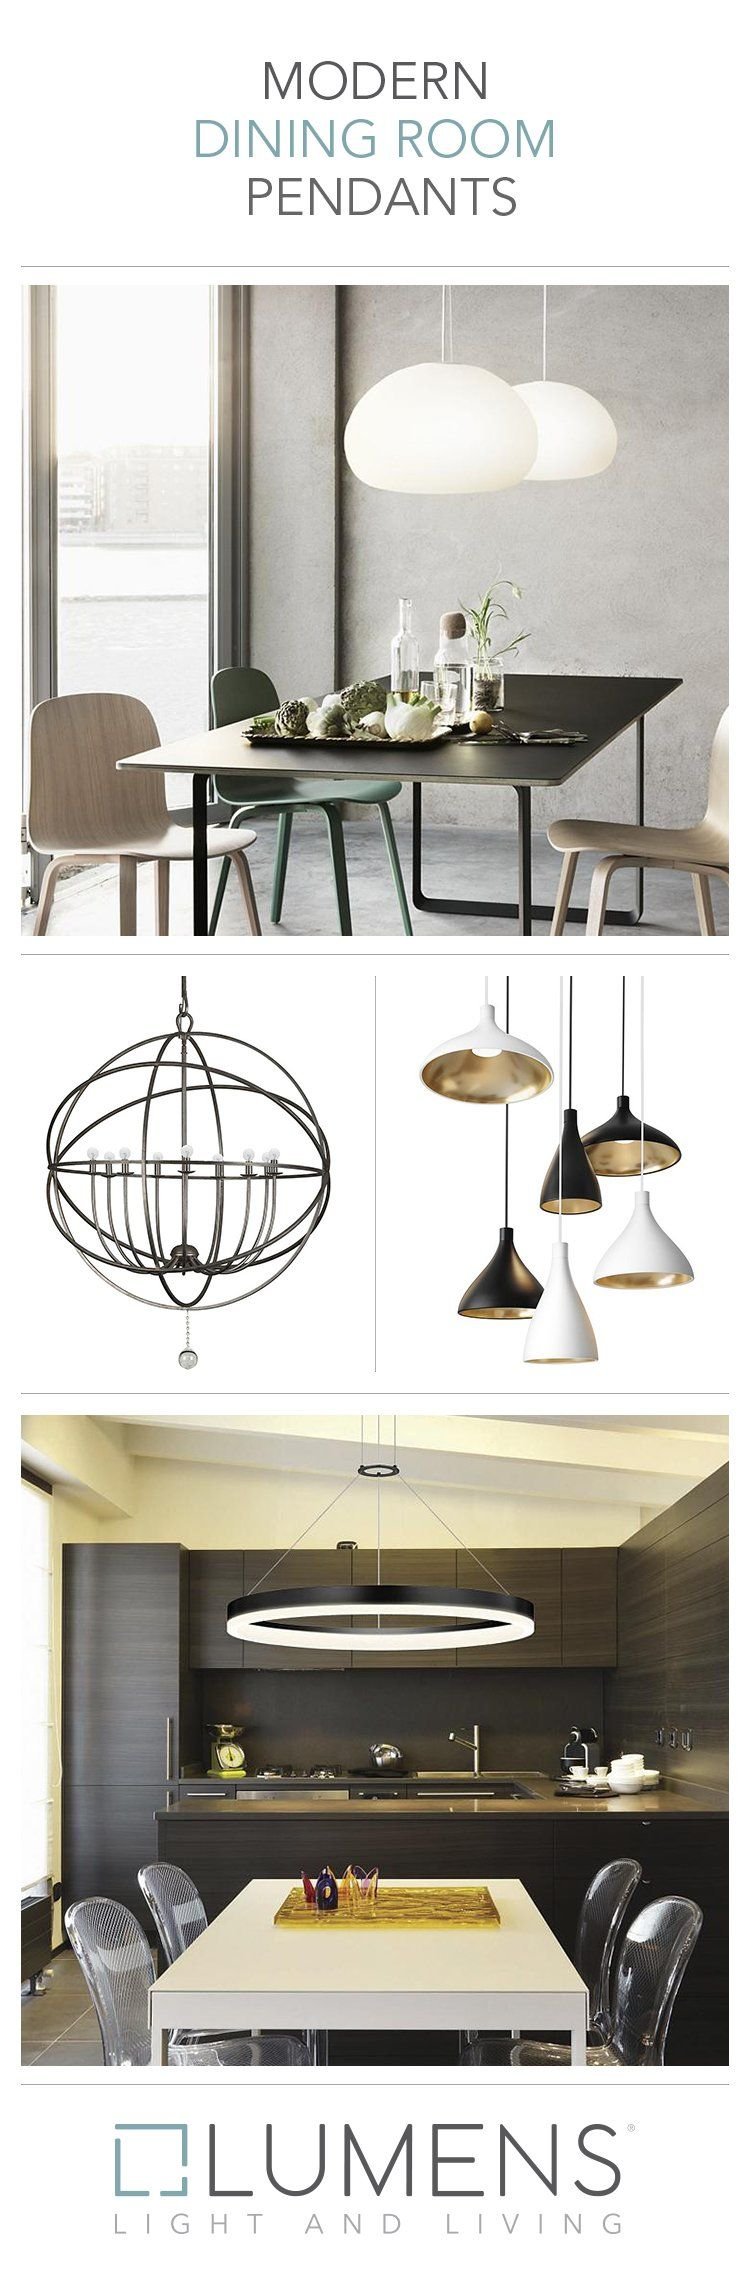 The Popular Pendant Light Is A Great Choice Over Dining Room Tables And Eat In Kitchen Areas Modern Dining Room Dining Room Pendant Living Room Light Fixtures